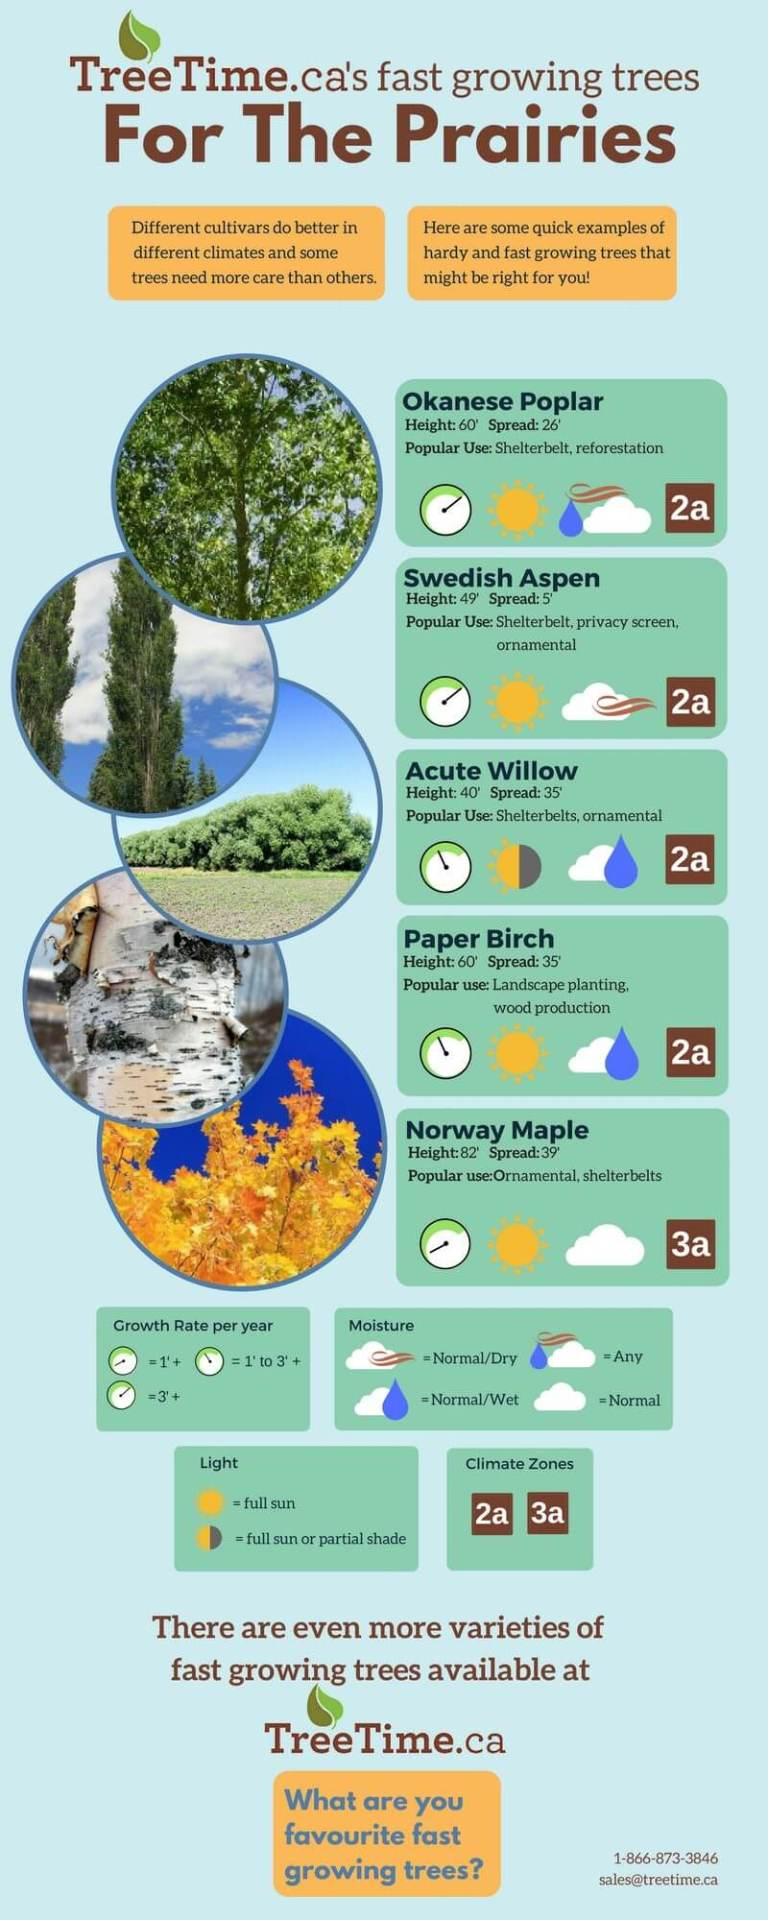 An Infographic describing some fast growing trees for the prairies